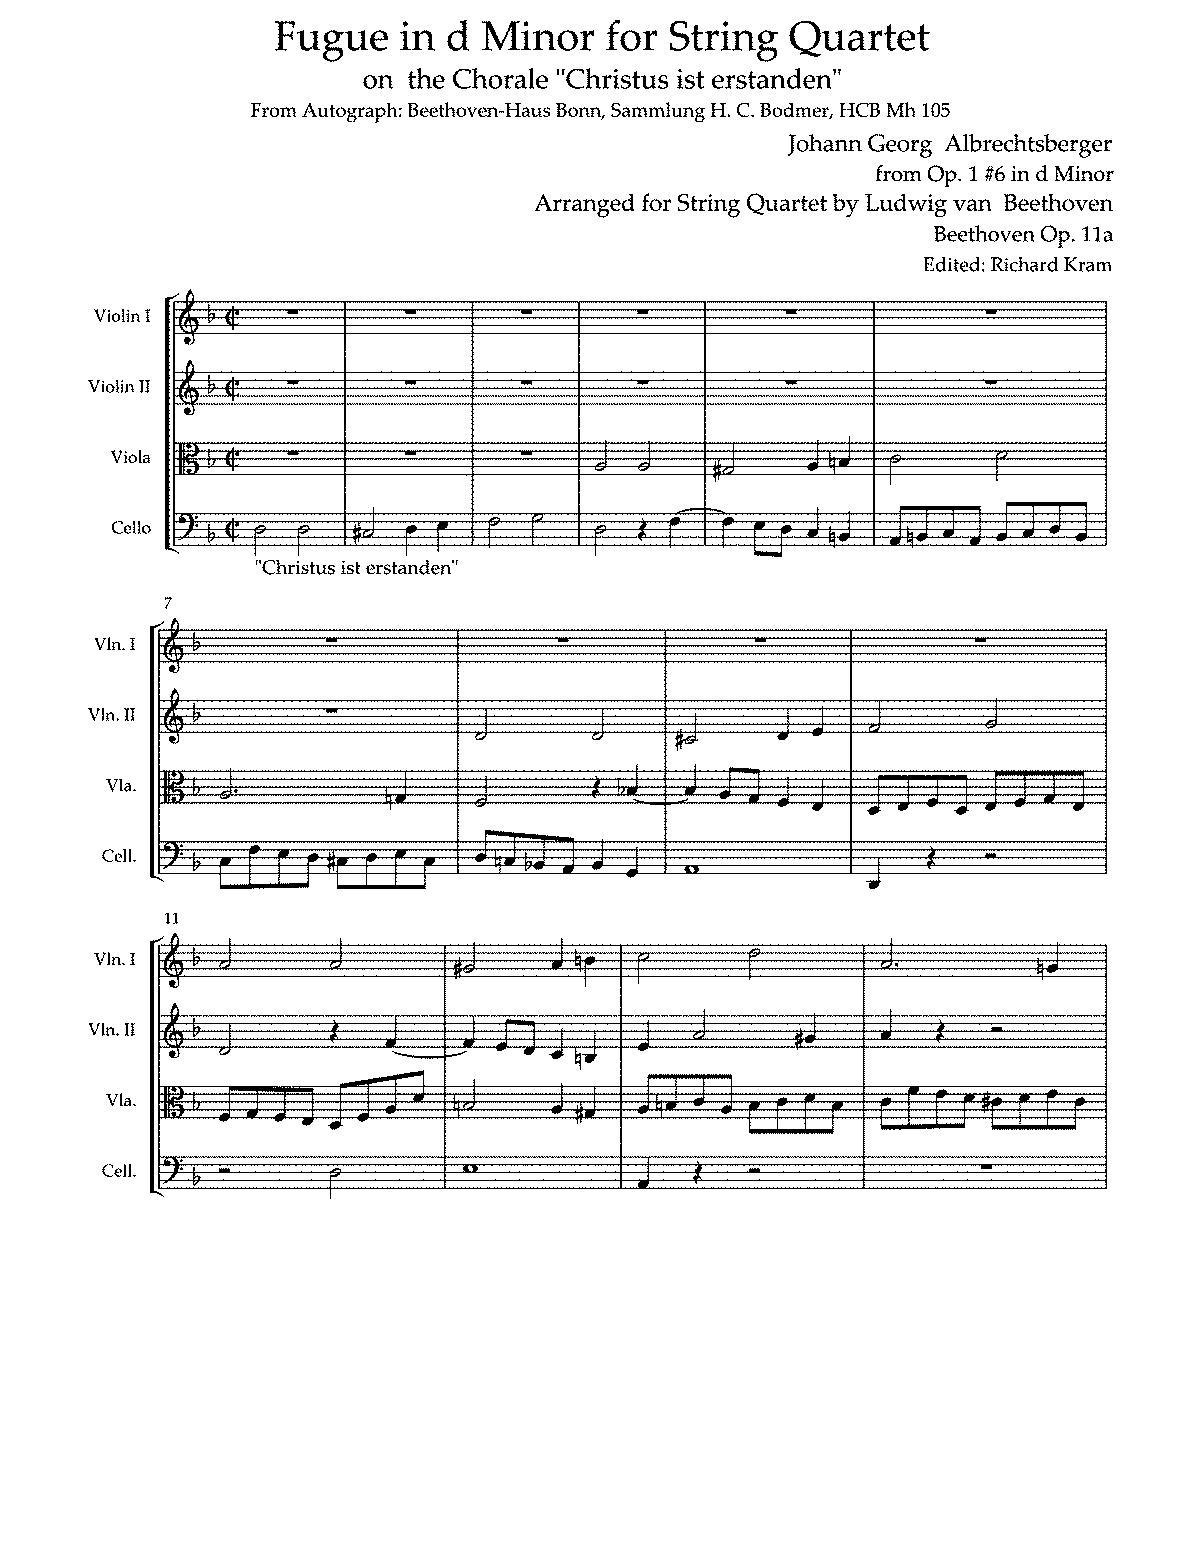 PMLP180830-Fugue in d Minor Trans Beethoven.pdf